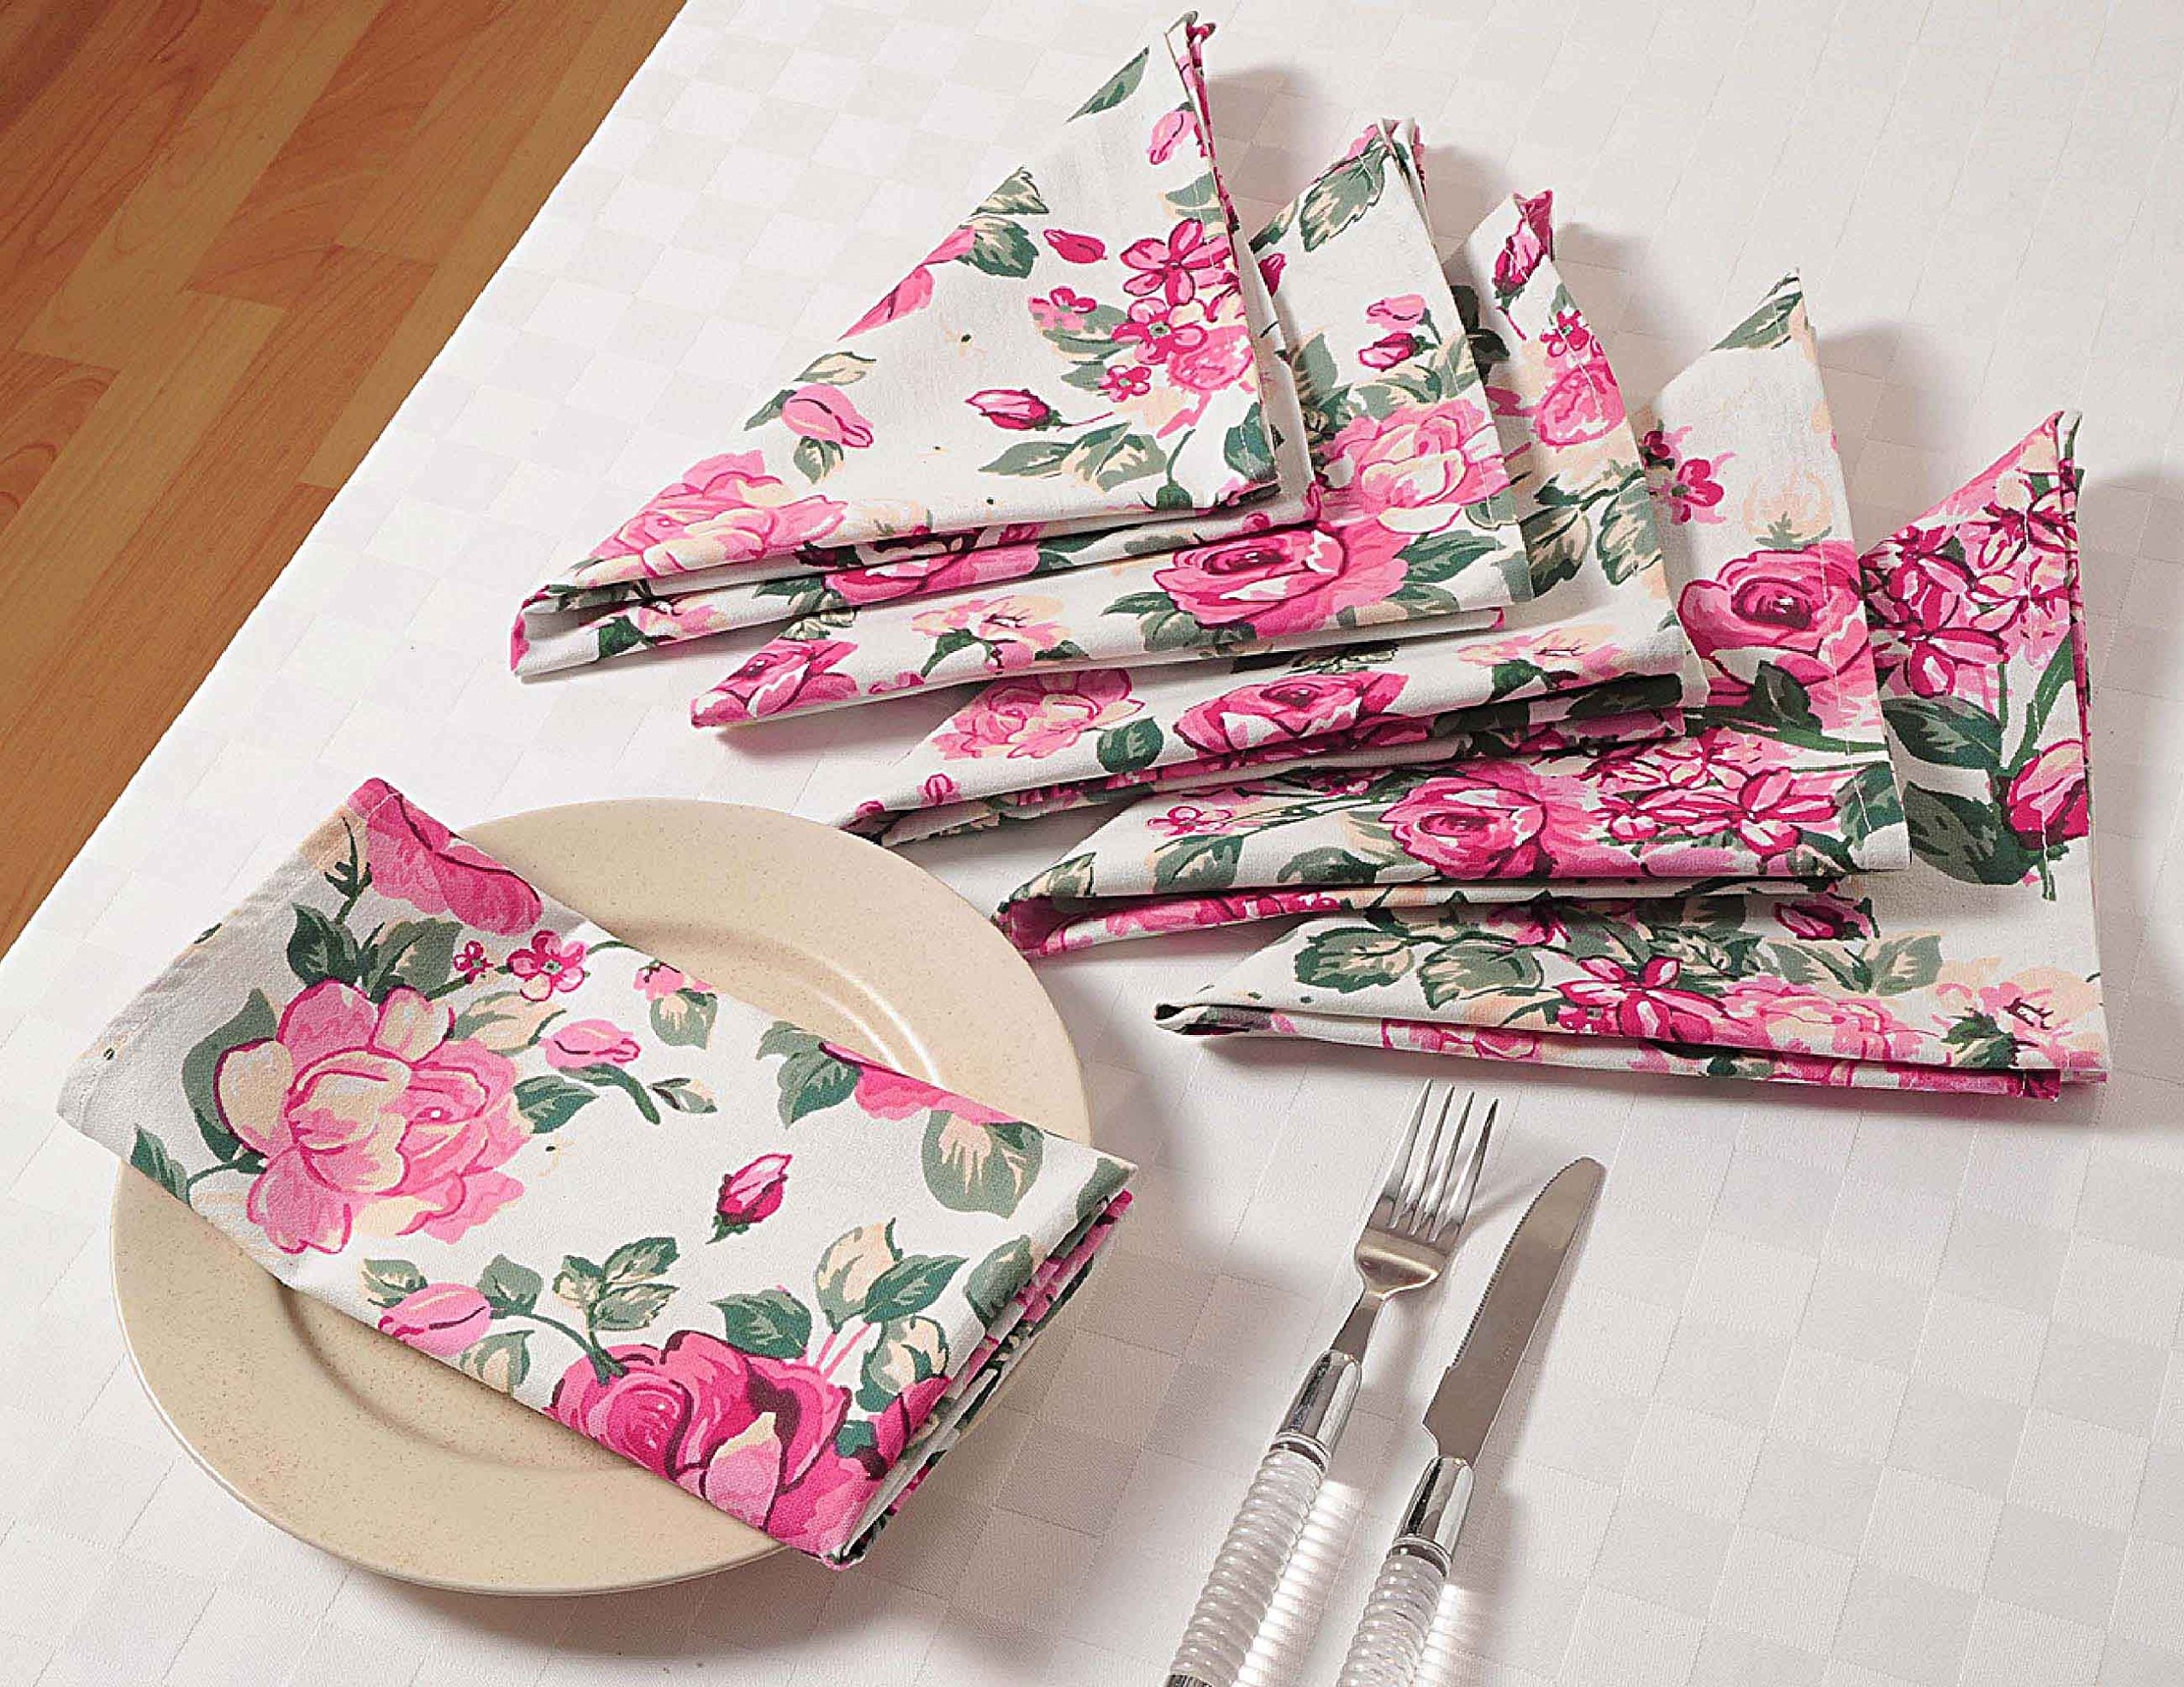 ShalinIndia Floral Cotton Dinner Napkins - 20'' x 20'' - Set of 24 Premium Table Linens for anniversary party decorations - White, Pink and Green Rose